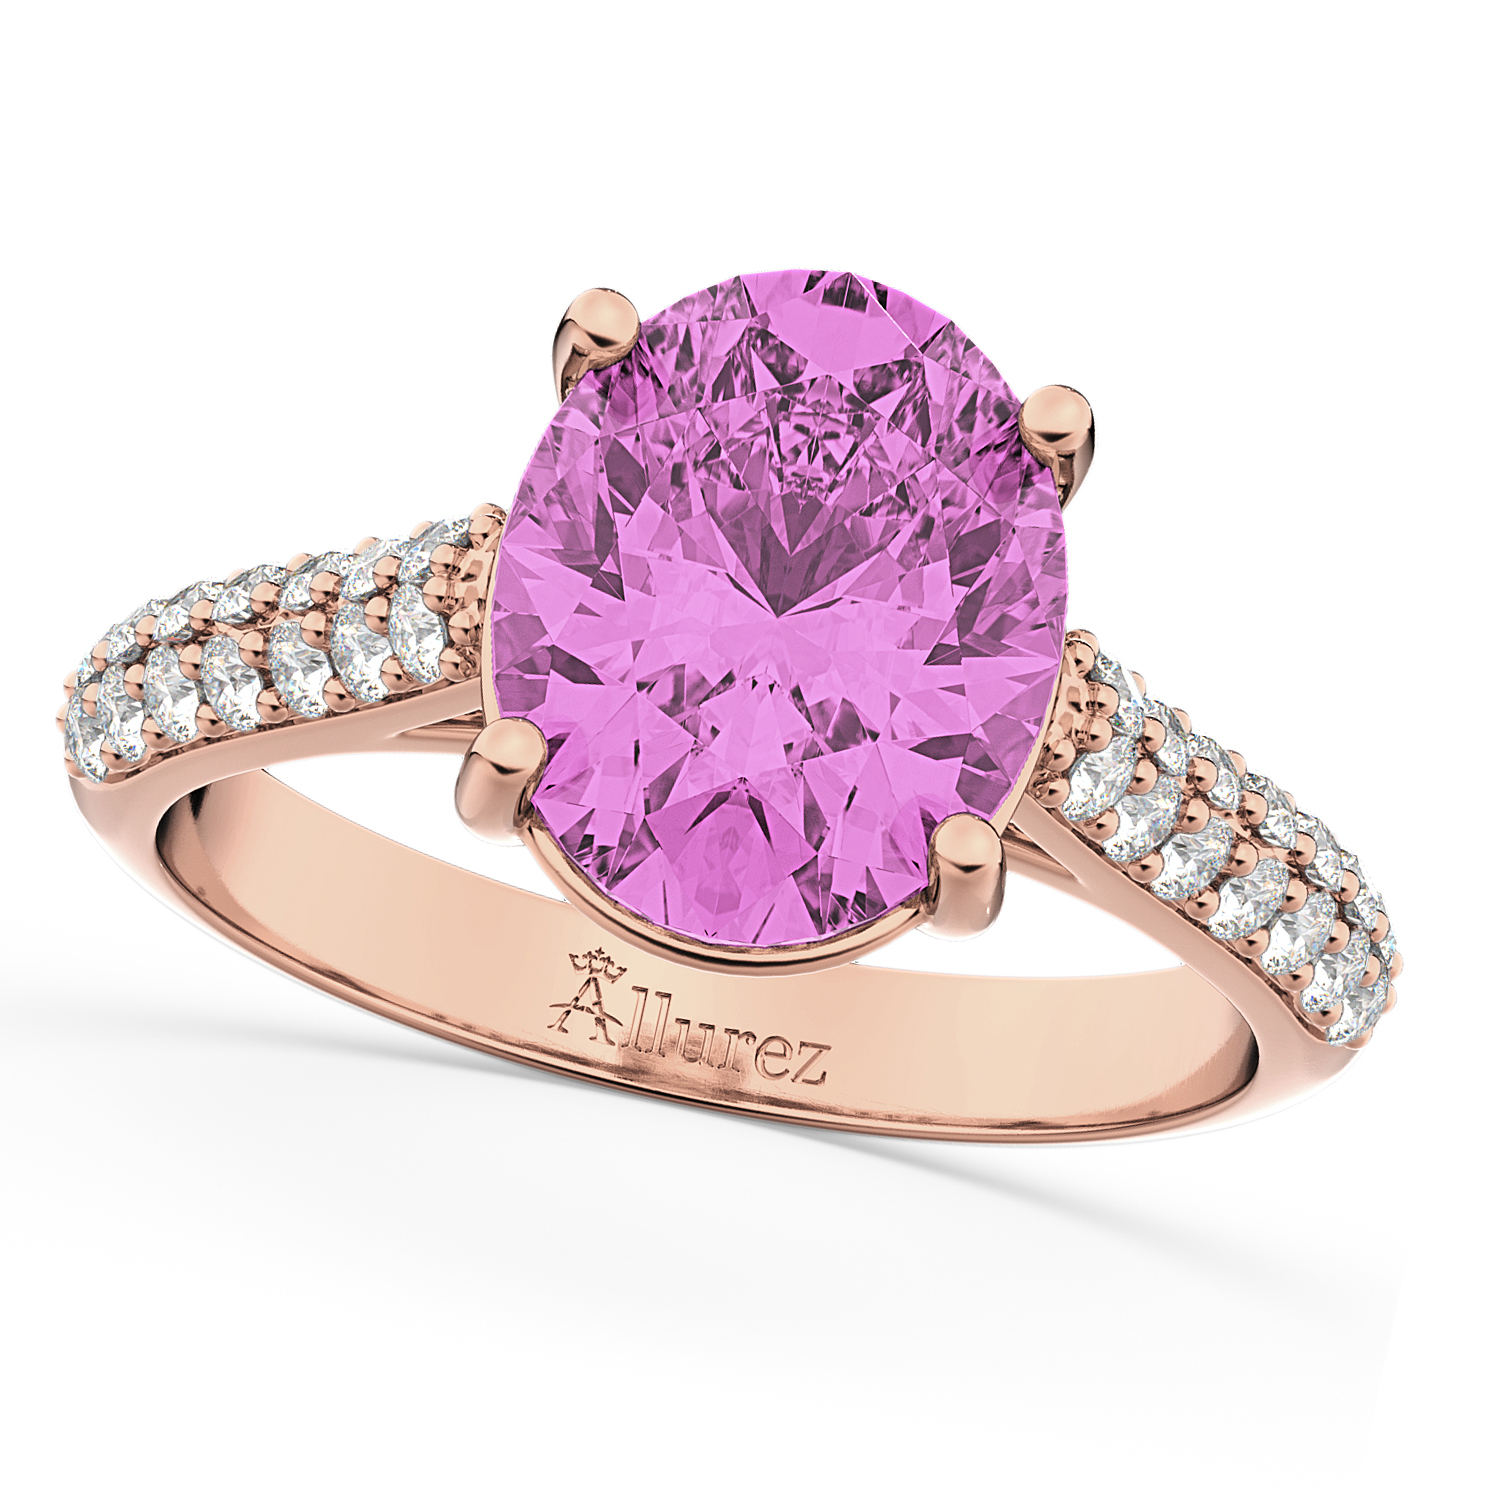 Oval Pink Sapphire & Diamond Engagement Ring 14k Rose Gold 4.42ct